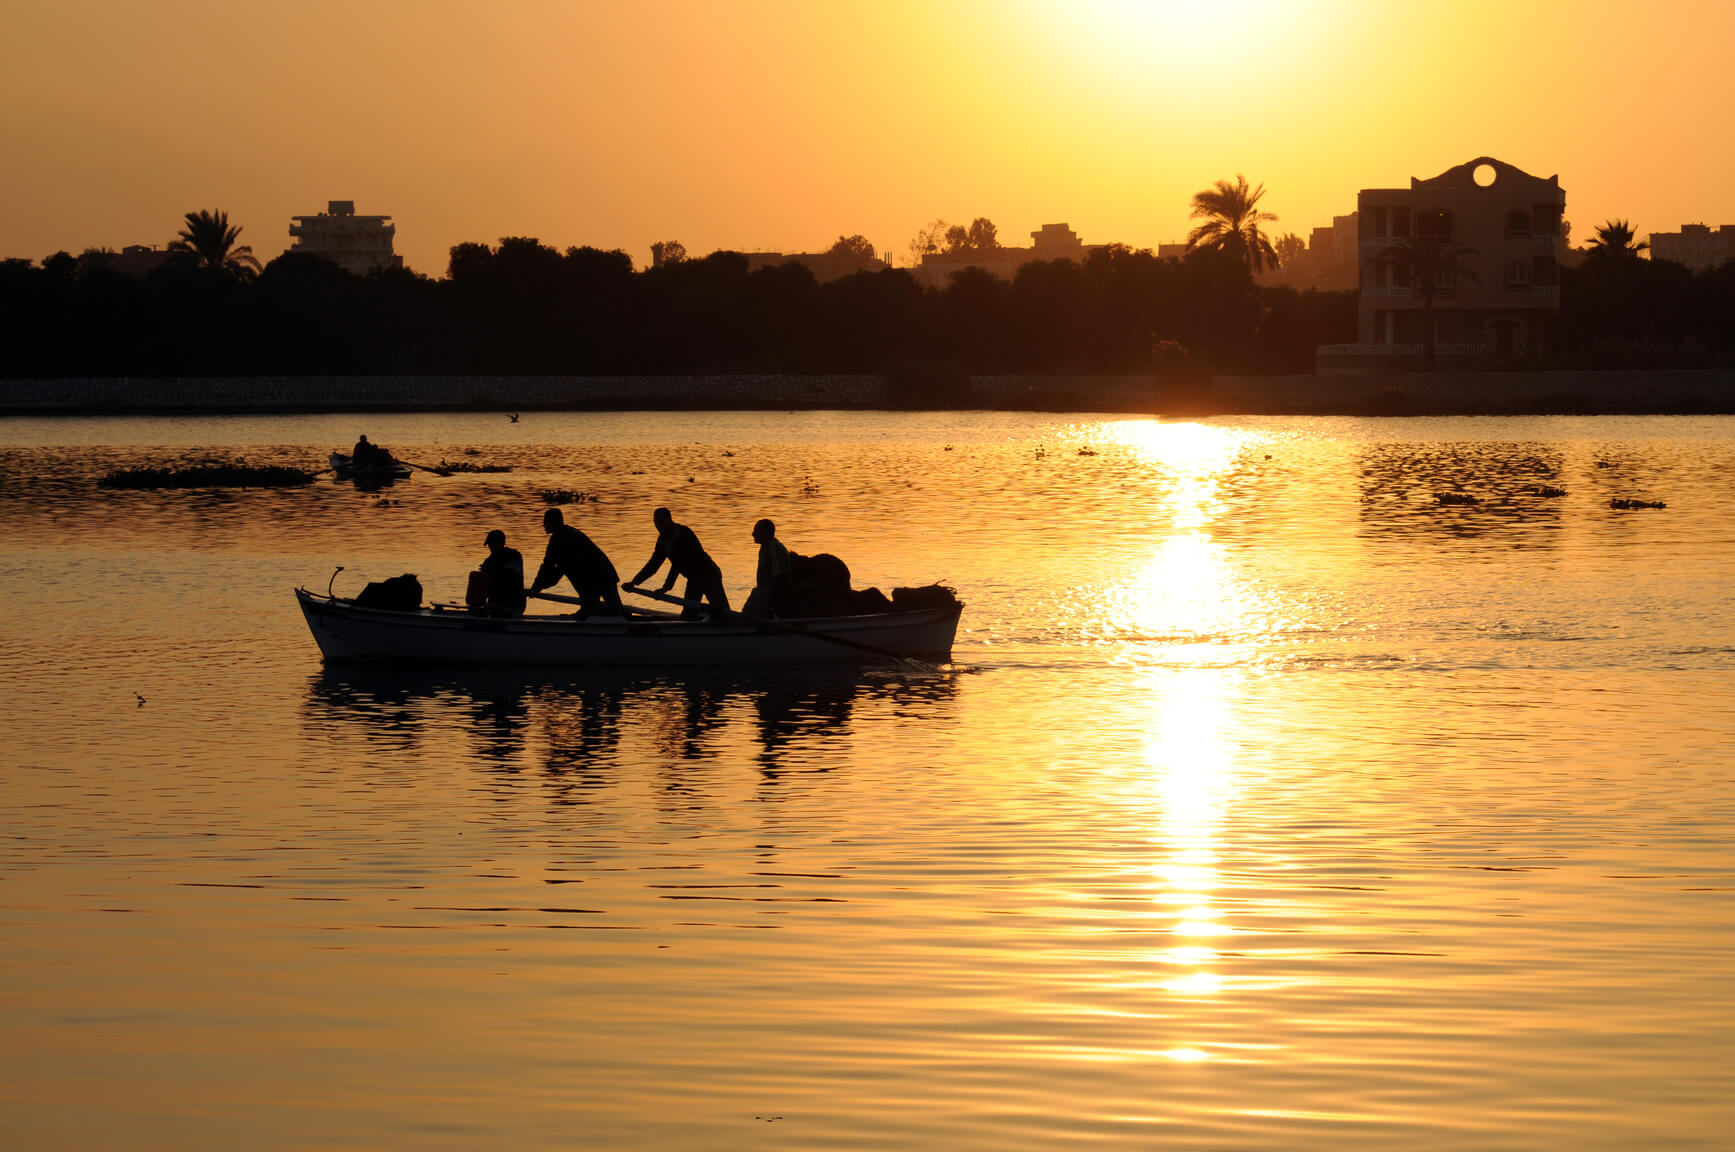 San Jose, California to Cairo, Egypt for only $568 roundtrip (Sep-Oct dates)